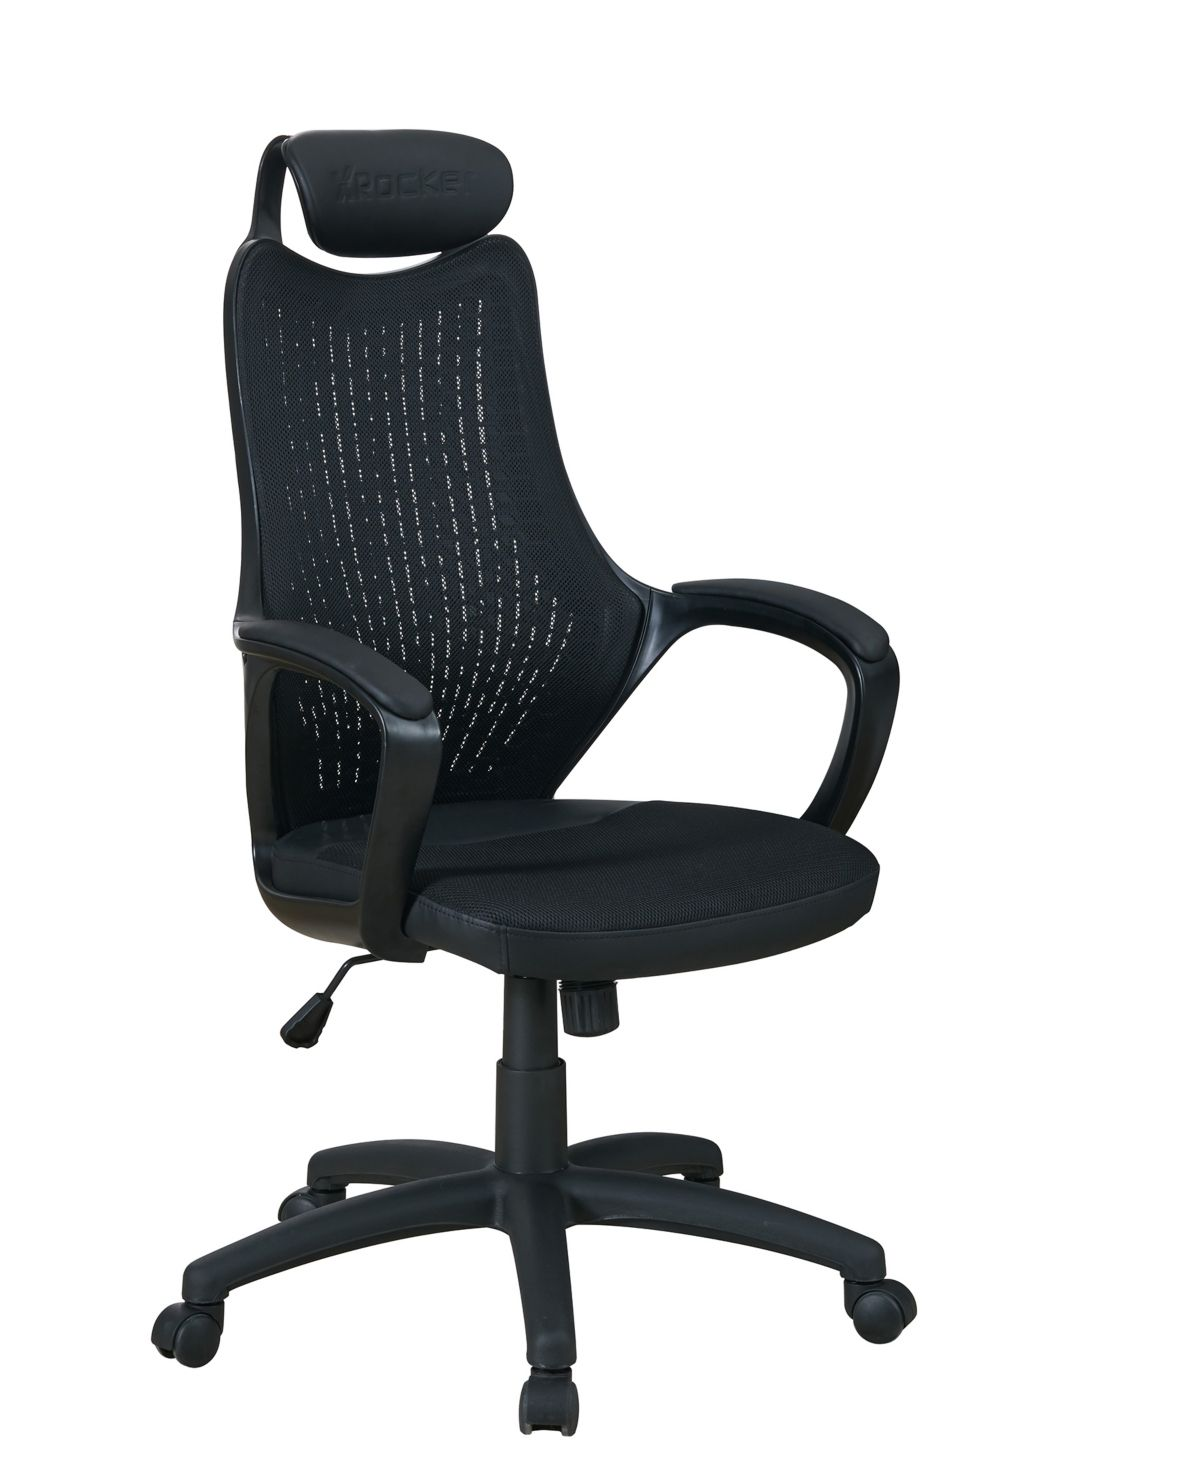 X Rocker Pc Office Gaming Chair Reviews Furniture Macy S